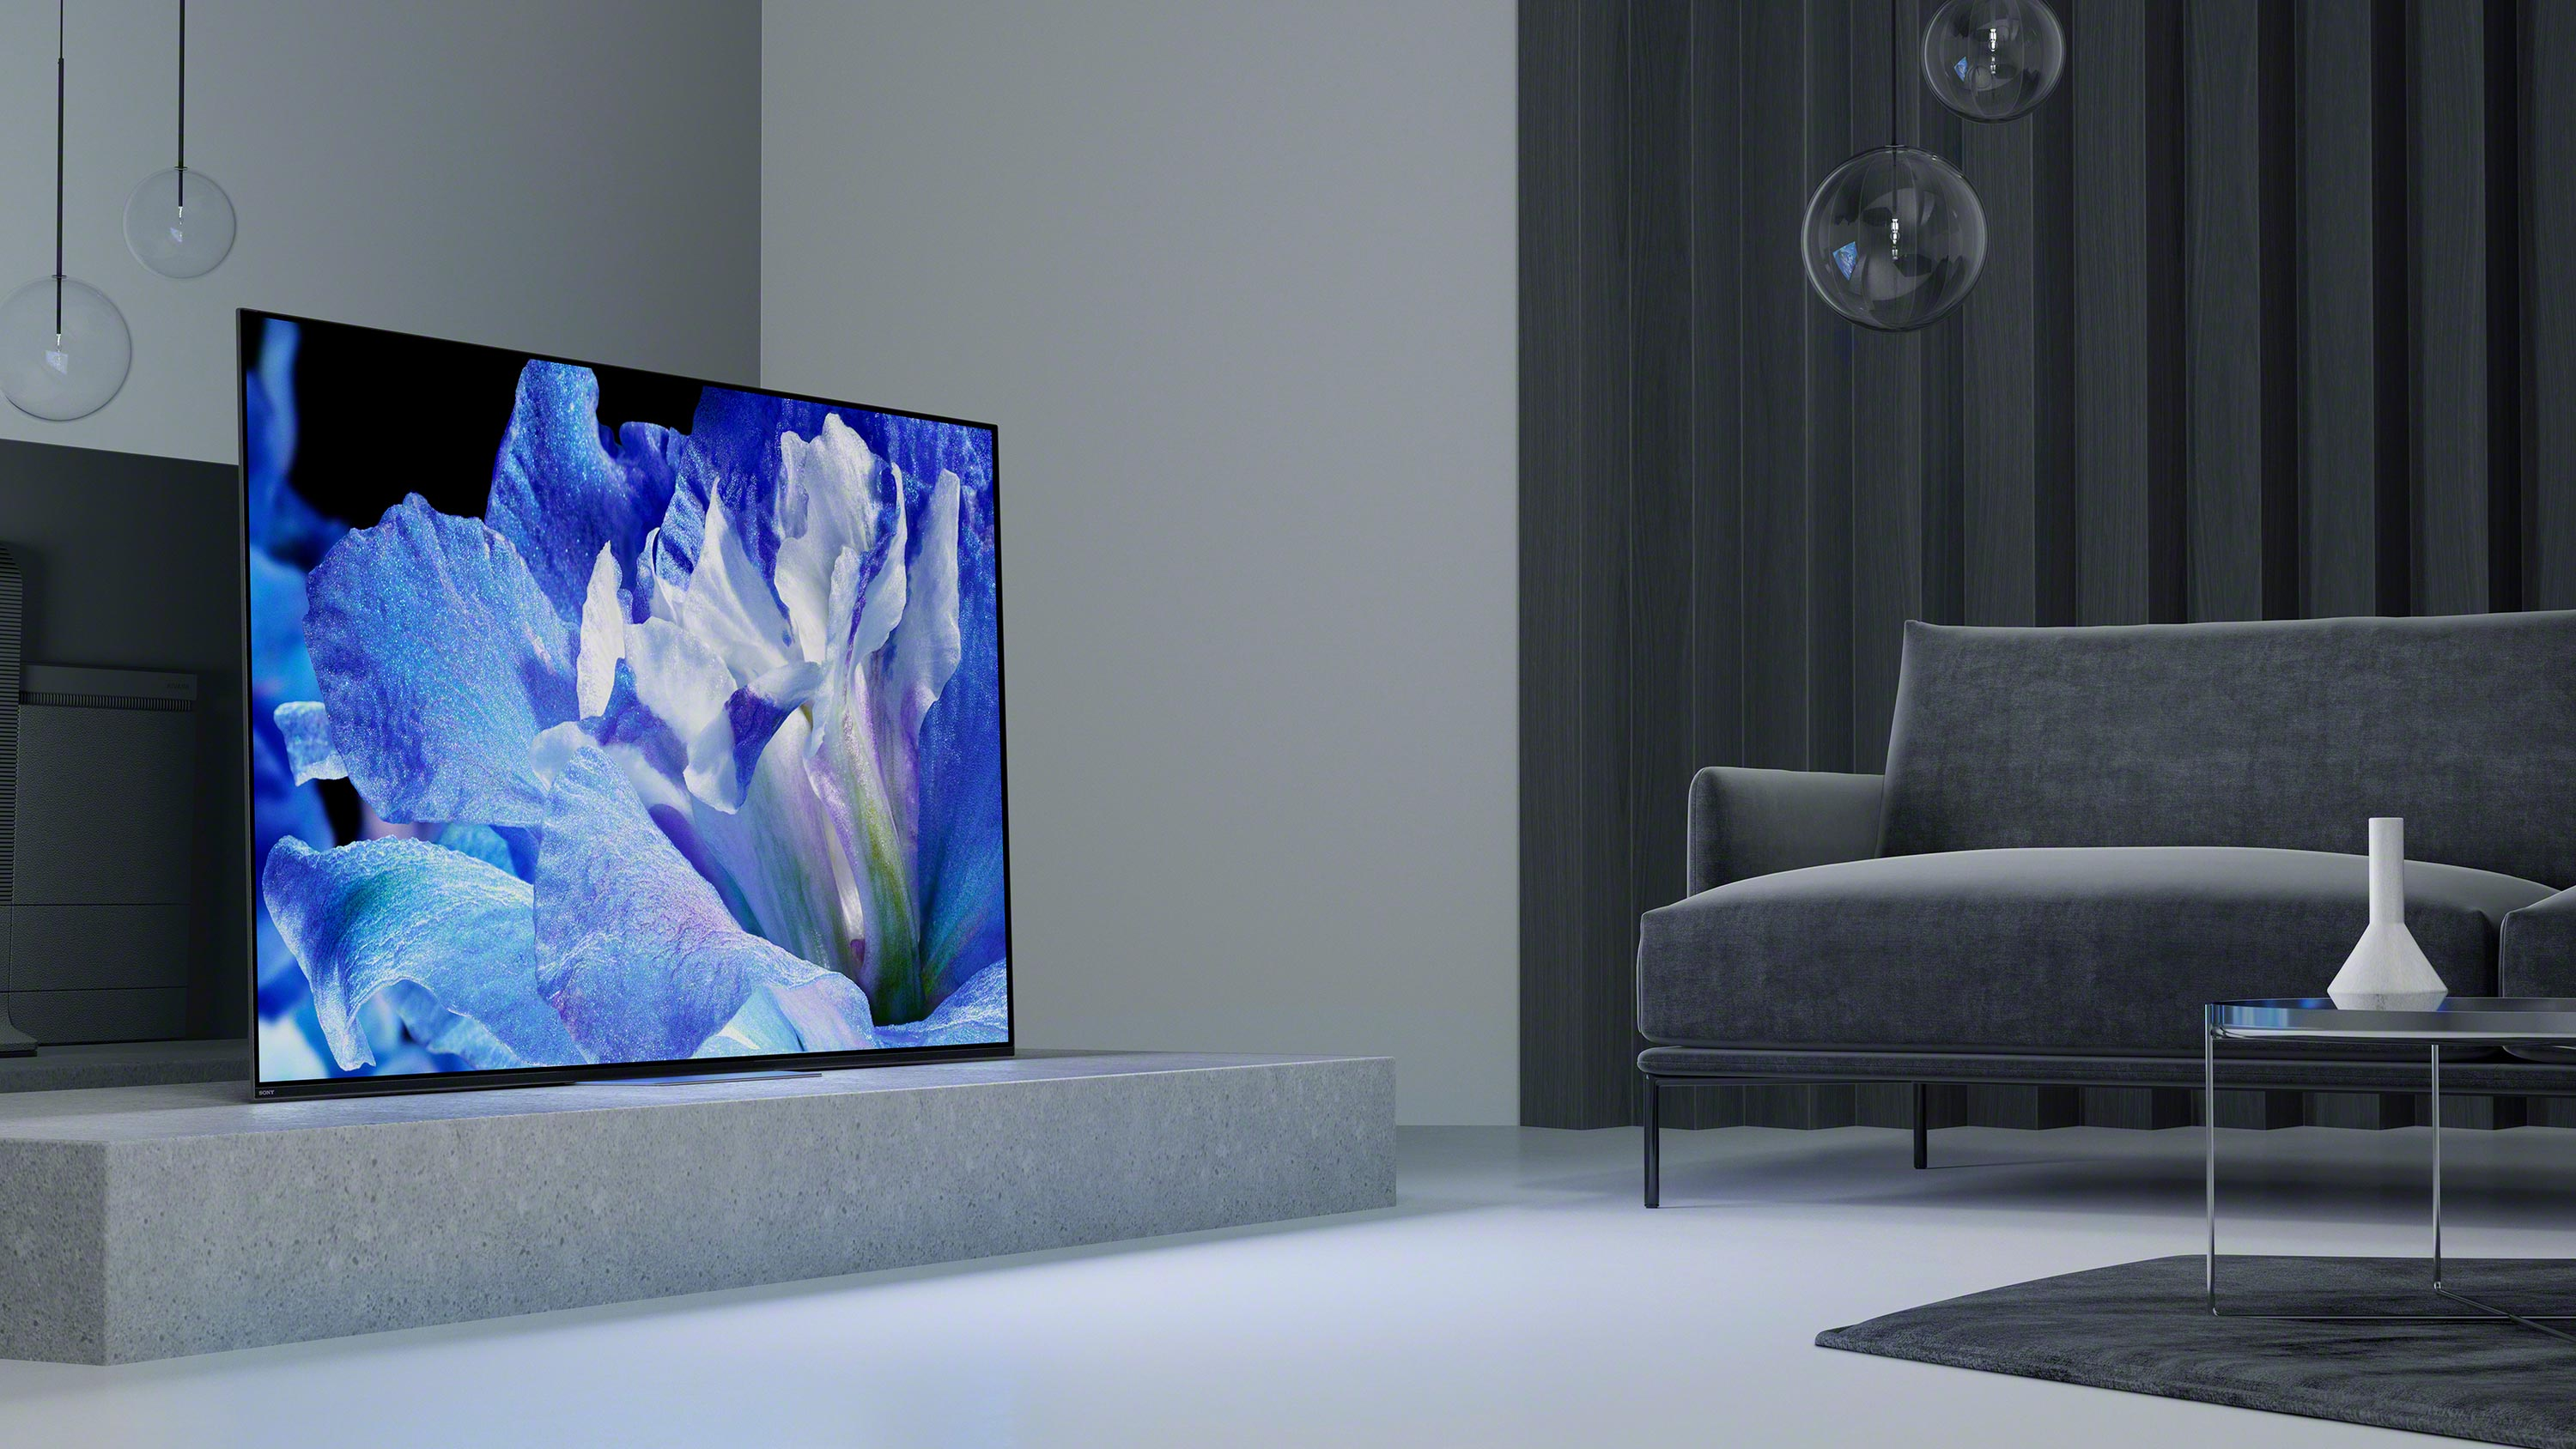 Sony TV Line Up 2018: Hereu0027s Every Sony BRAVIA TV Coming This Year |  TechRadar